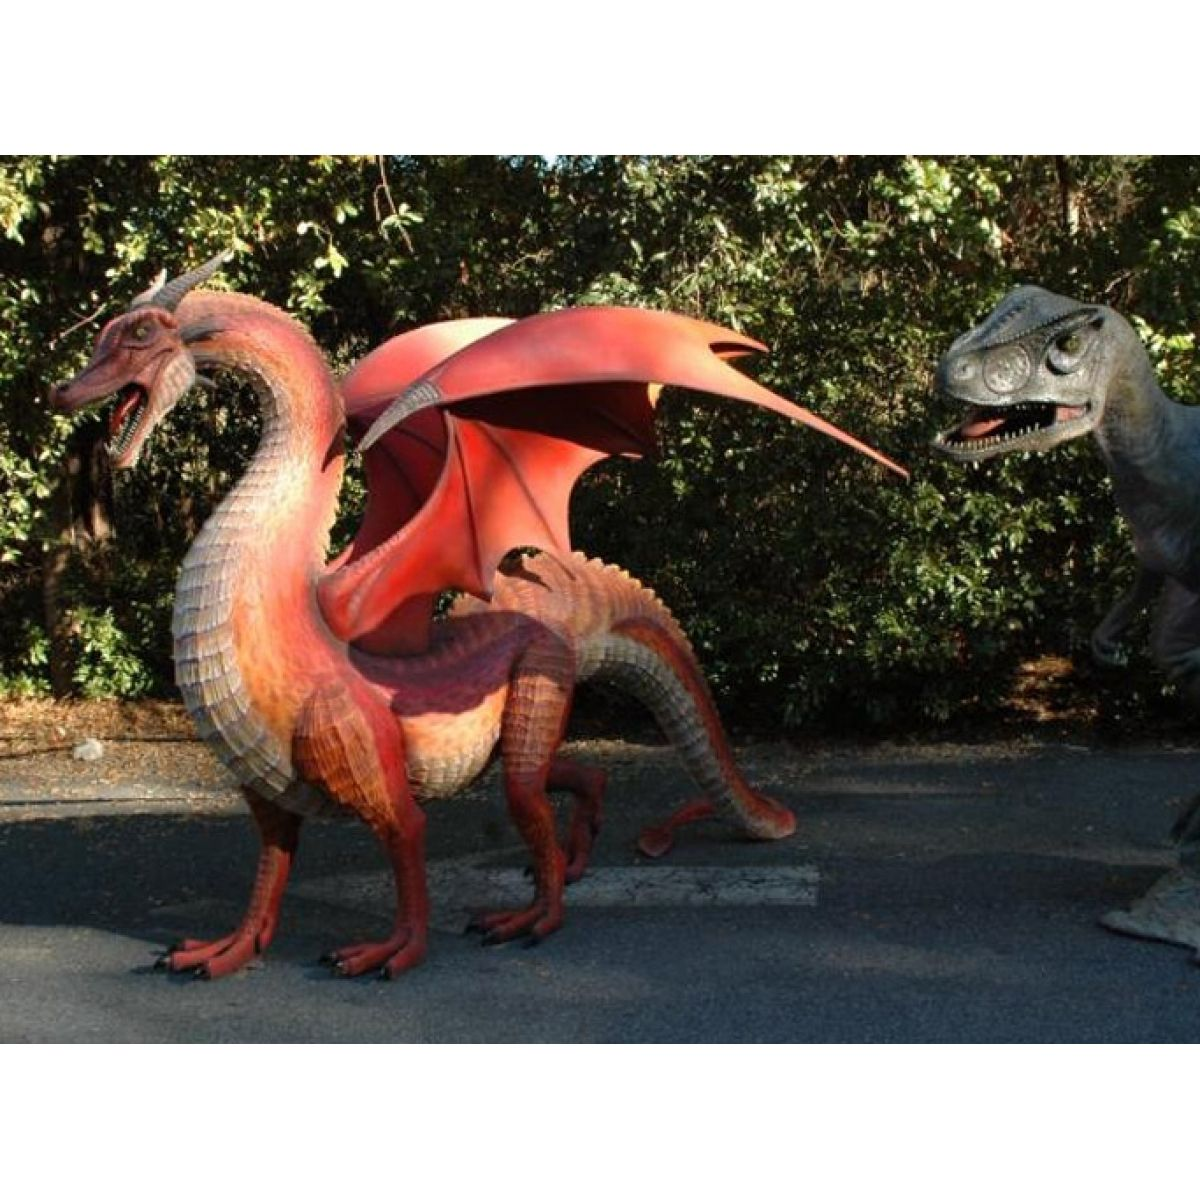 Giant Dragon Statue Giant Dragon Red Wings Big Huge Statue Cool Life Size